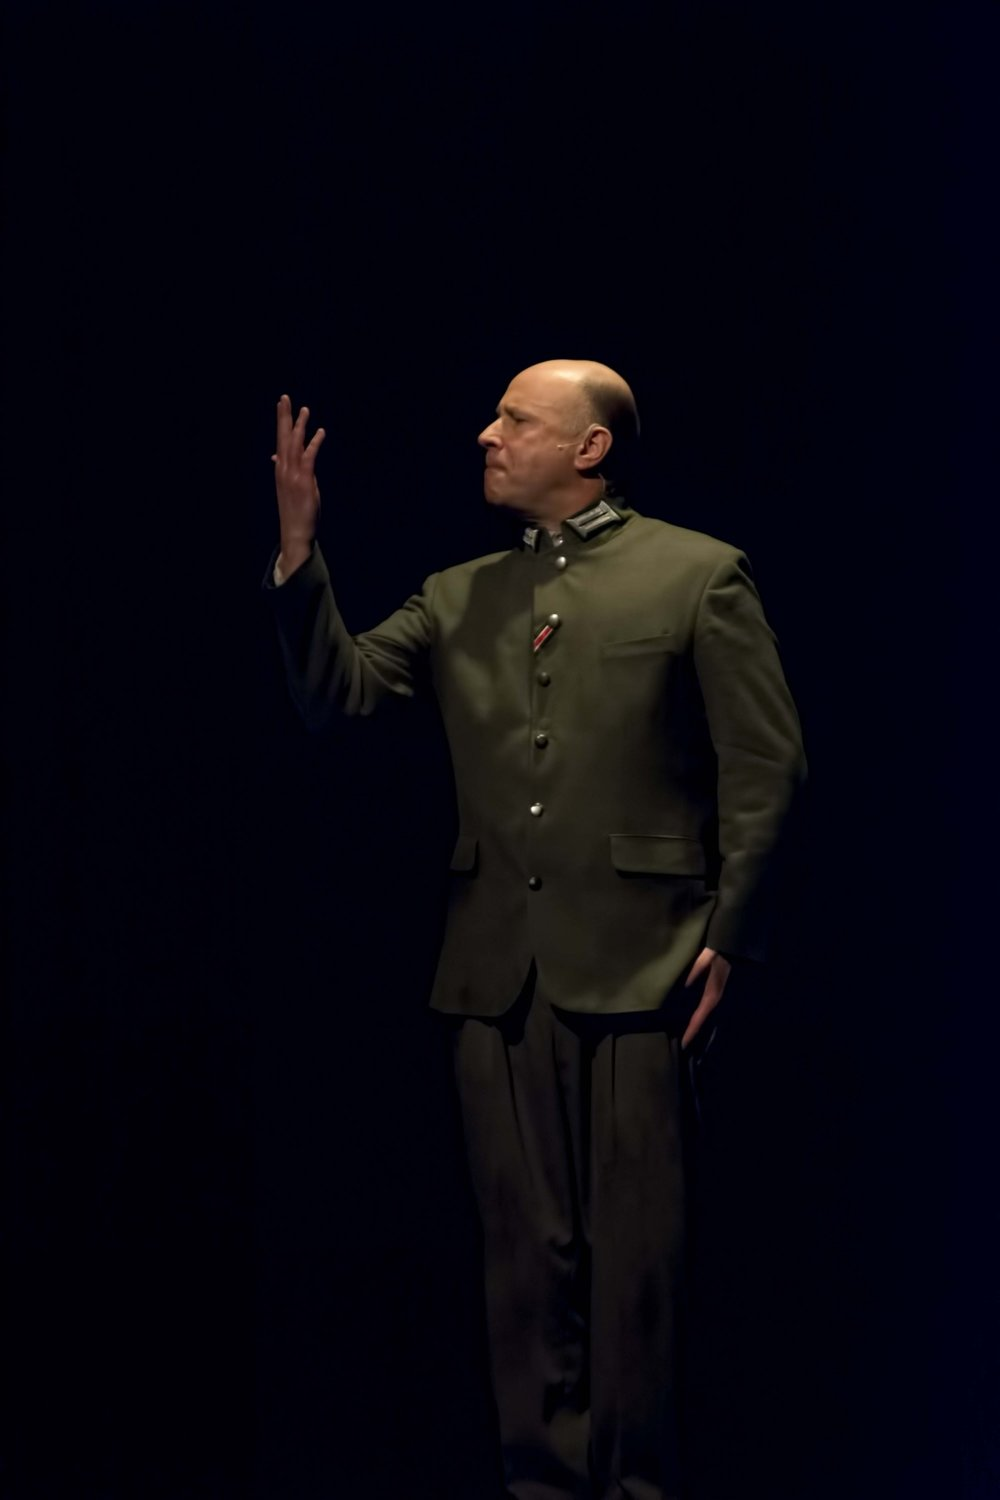 Roger Grundwald performing The Mitzvah